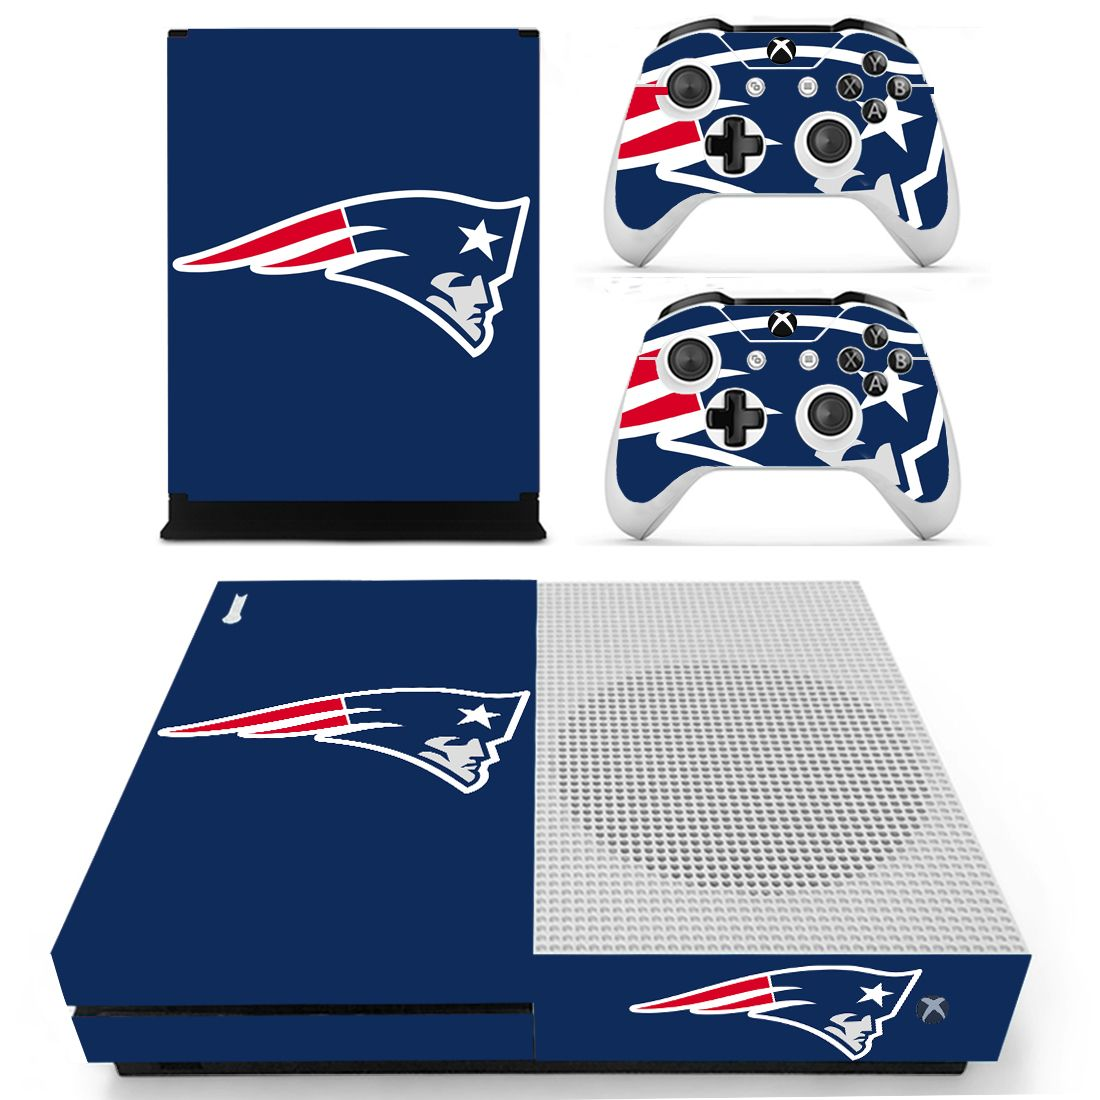 Best New Decals For All Gaming Systems Including All New Nintendo Switch Designs Xbox One S Xbox One Gaming Accessories